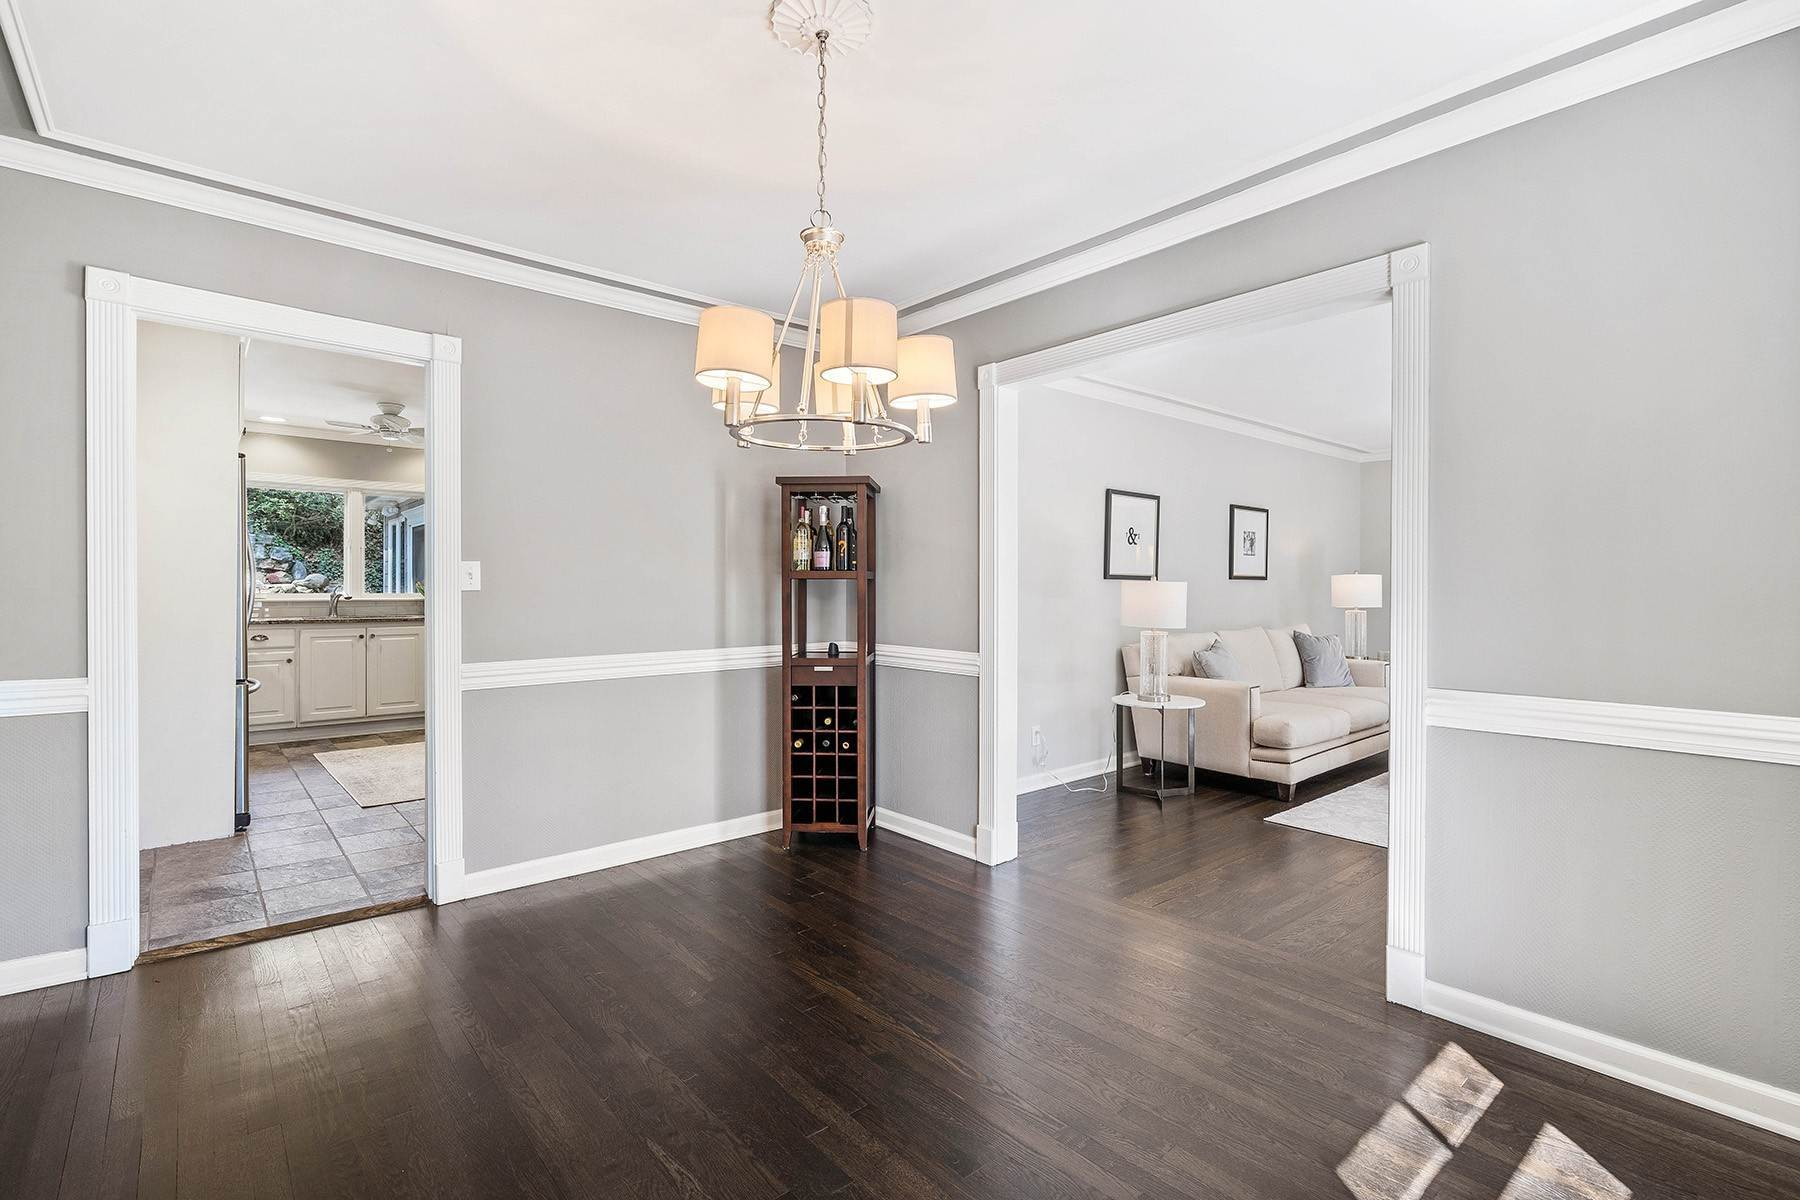 6. Single Family Homes for Sale at Fabulous Updated and Expanded Home Near Chastain Park 4944 Carol Lane Atlanta, Georgia 30327 United States